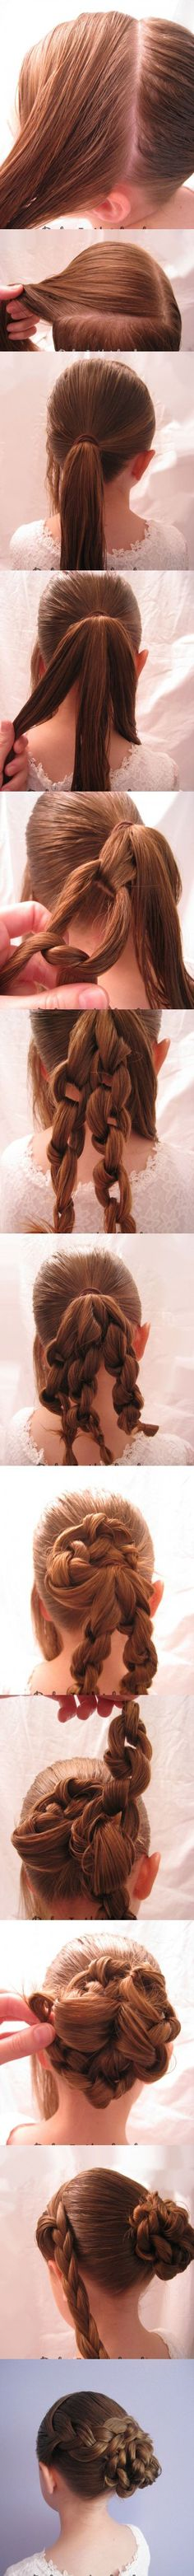 Super Effortless Knotted Bun Updo And Straightforward Bun Hairstyle Tutorials | Pinkous